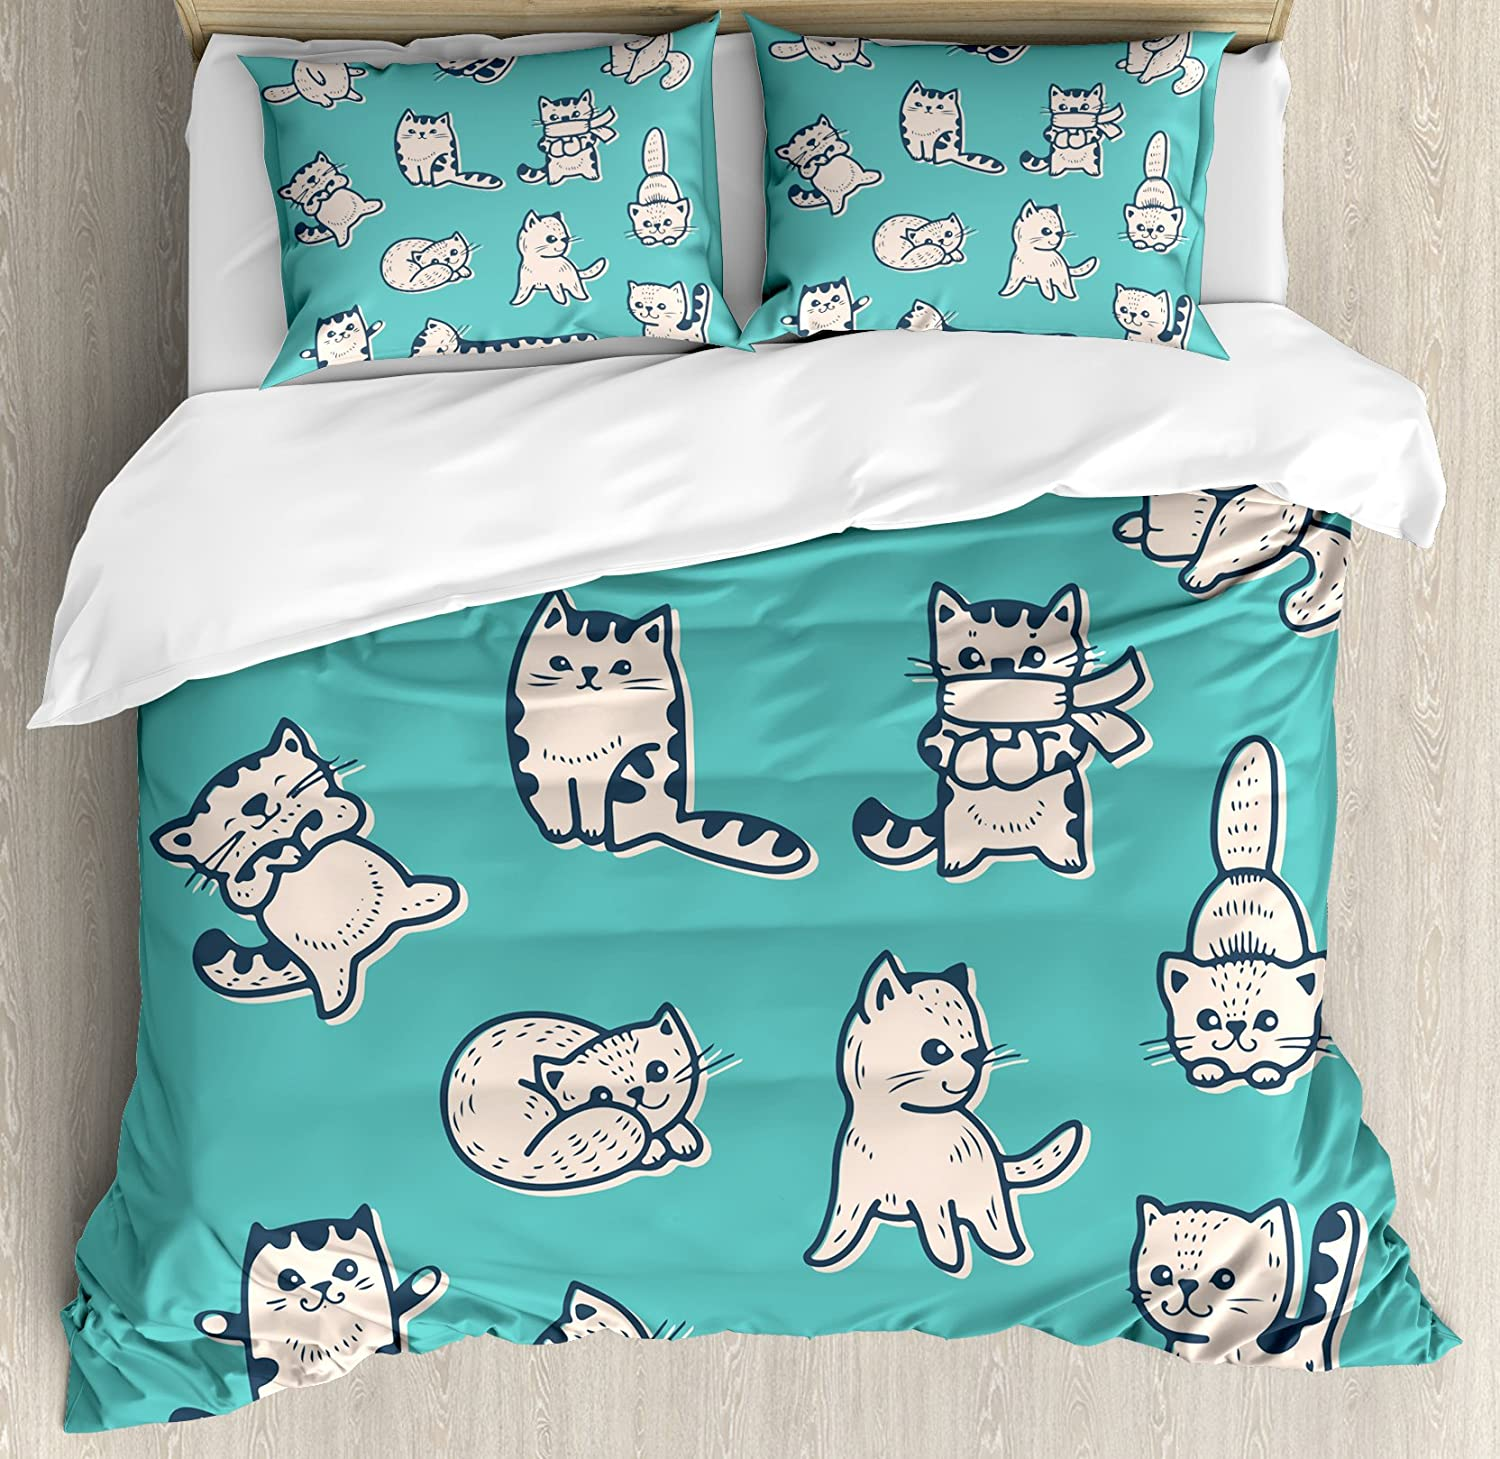 (QUEEN / FULL, Multi 1) Funny Queen Size Duvet Cover Set by Ambesonne, Cute Kitties in Various Gestures Sleeping Playful Babyish Cat Animal Illustration, Decorative 3 Piece Bedding Set with 2 Pillow Shams, Aqua Cream B075QH9R2Mマルチ1 QUEEN / FULL